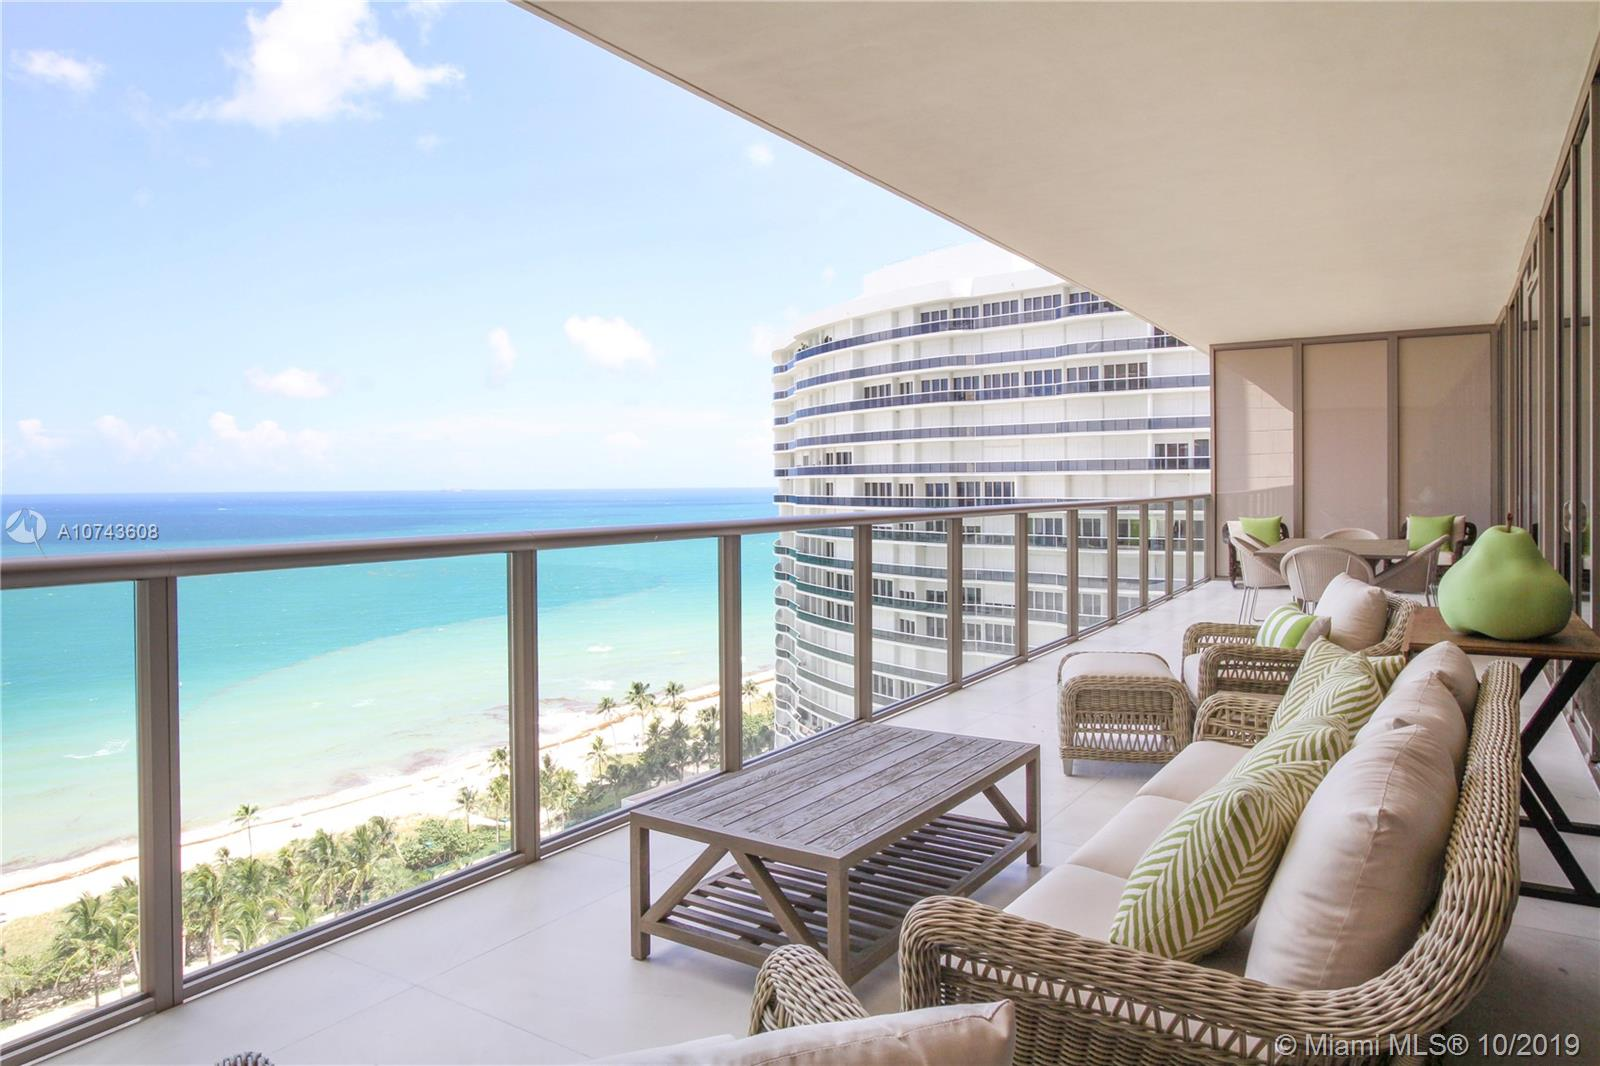 9701 Collins Avenue, Bal Harbour FL 33154